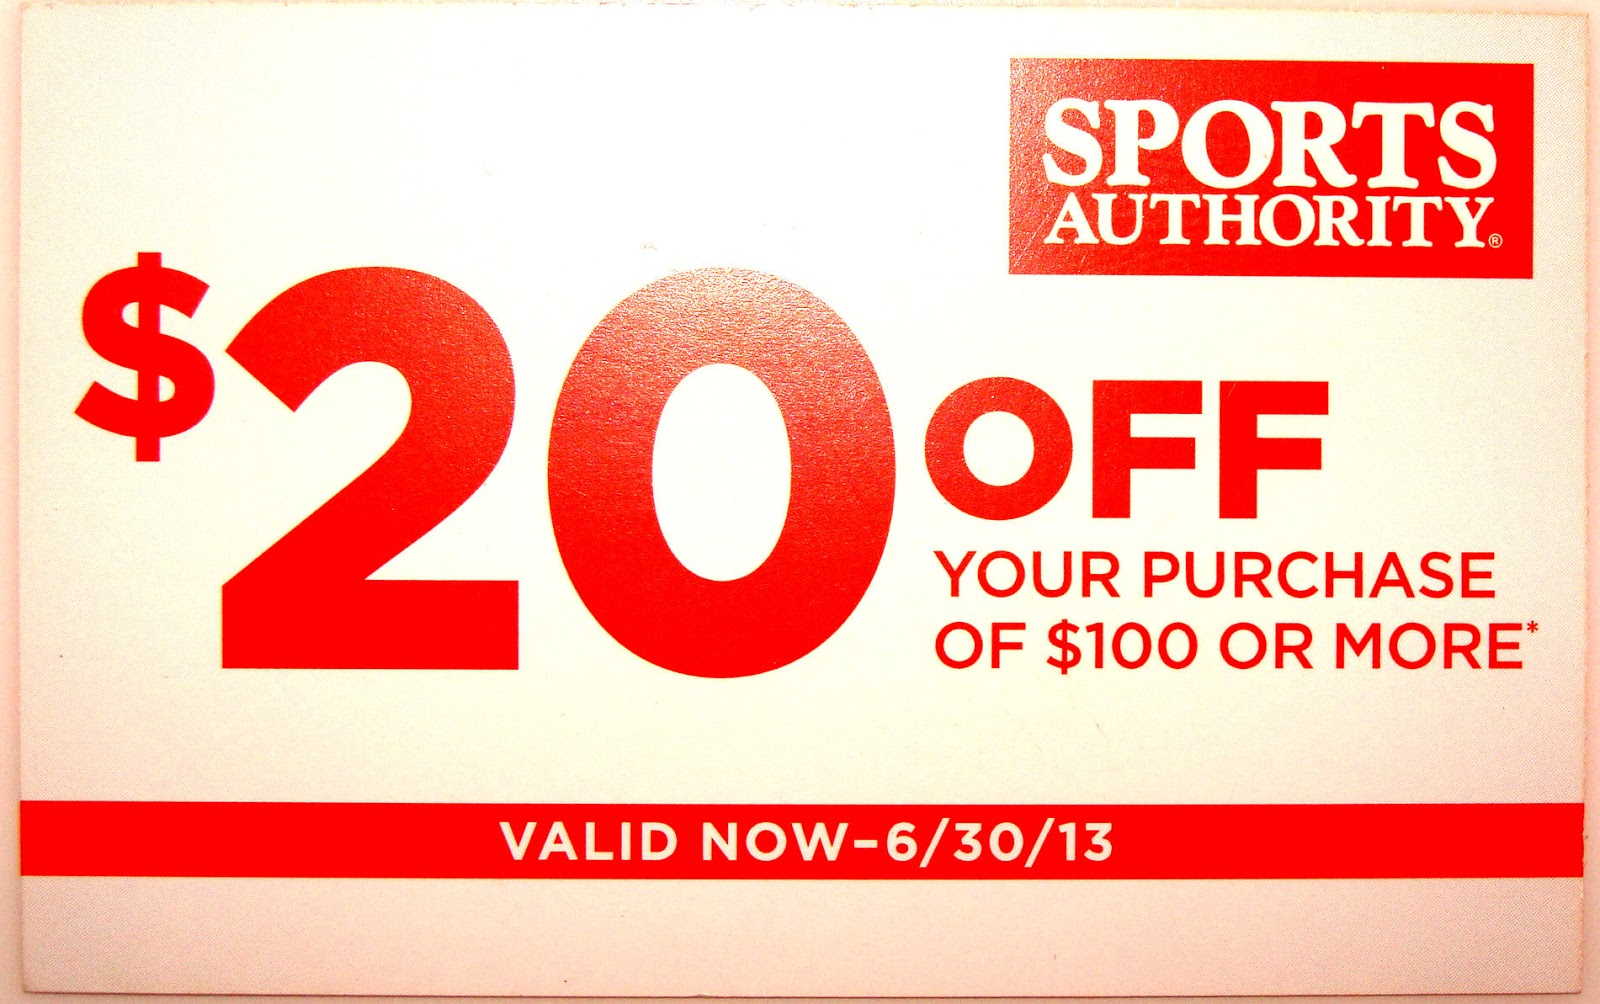 Sports Authority Coupon April 2014 If you see the coupons are